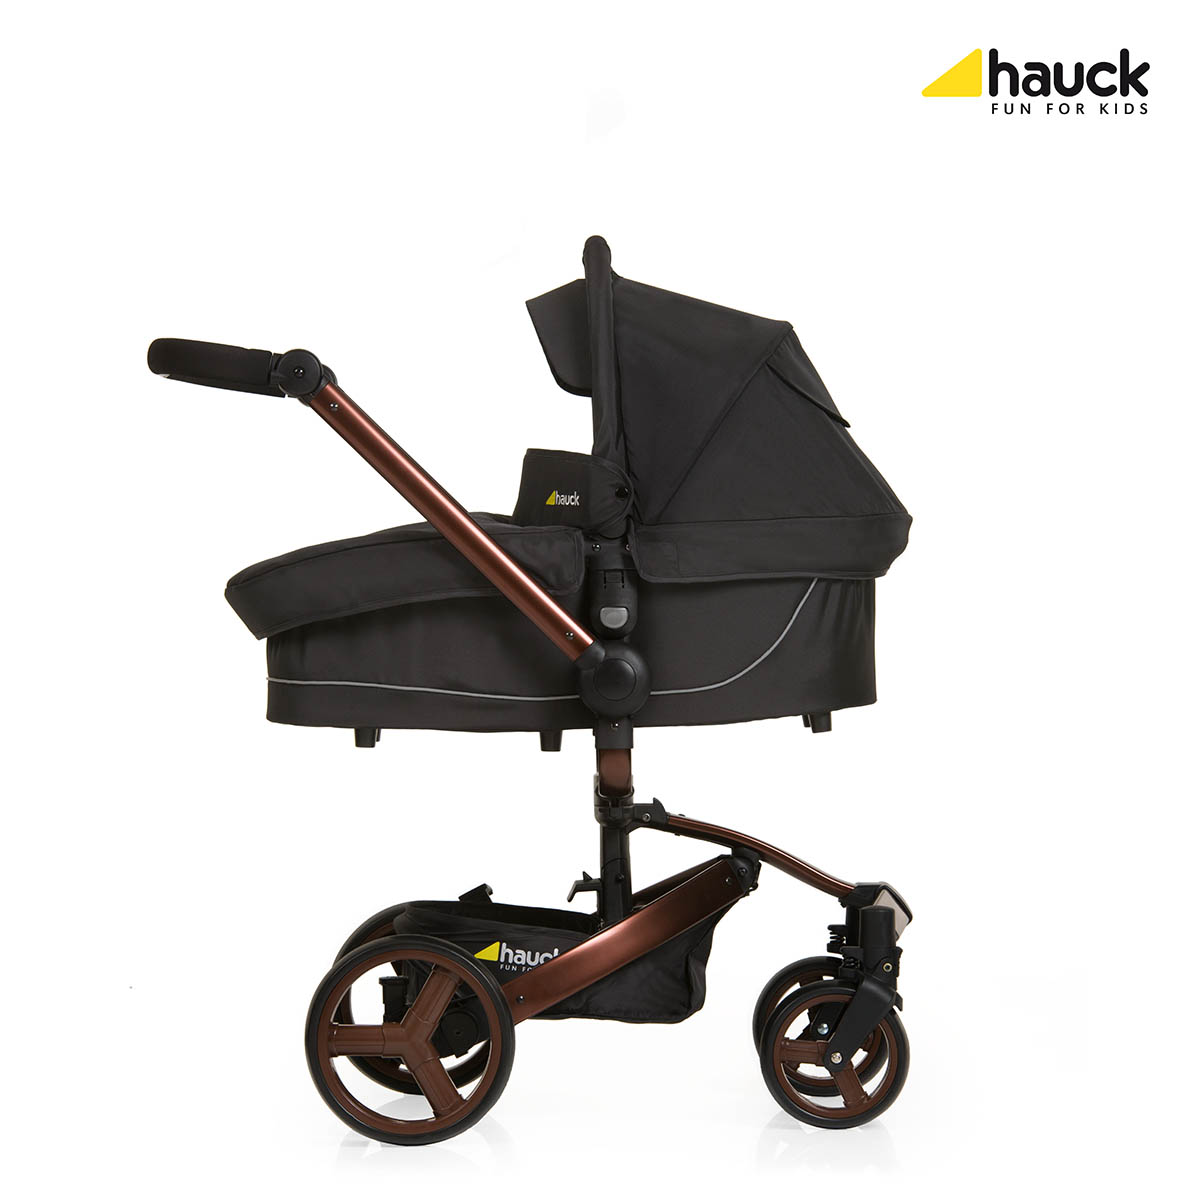 Awesome Hauck Twister Duo Set 2016 Chocolate Buy At Kidsroom Ibusinesslaw Wood Chair Design Ideas Ibusinesslaworg